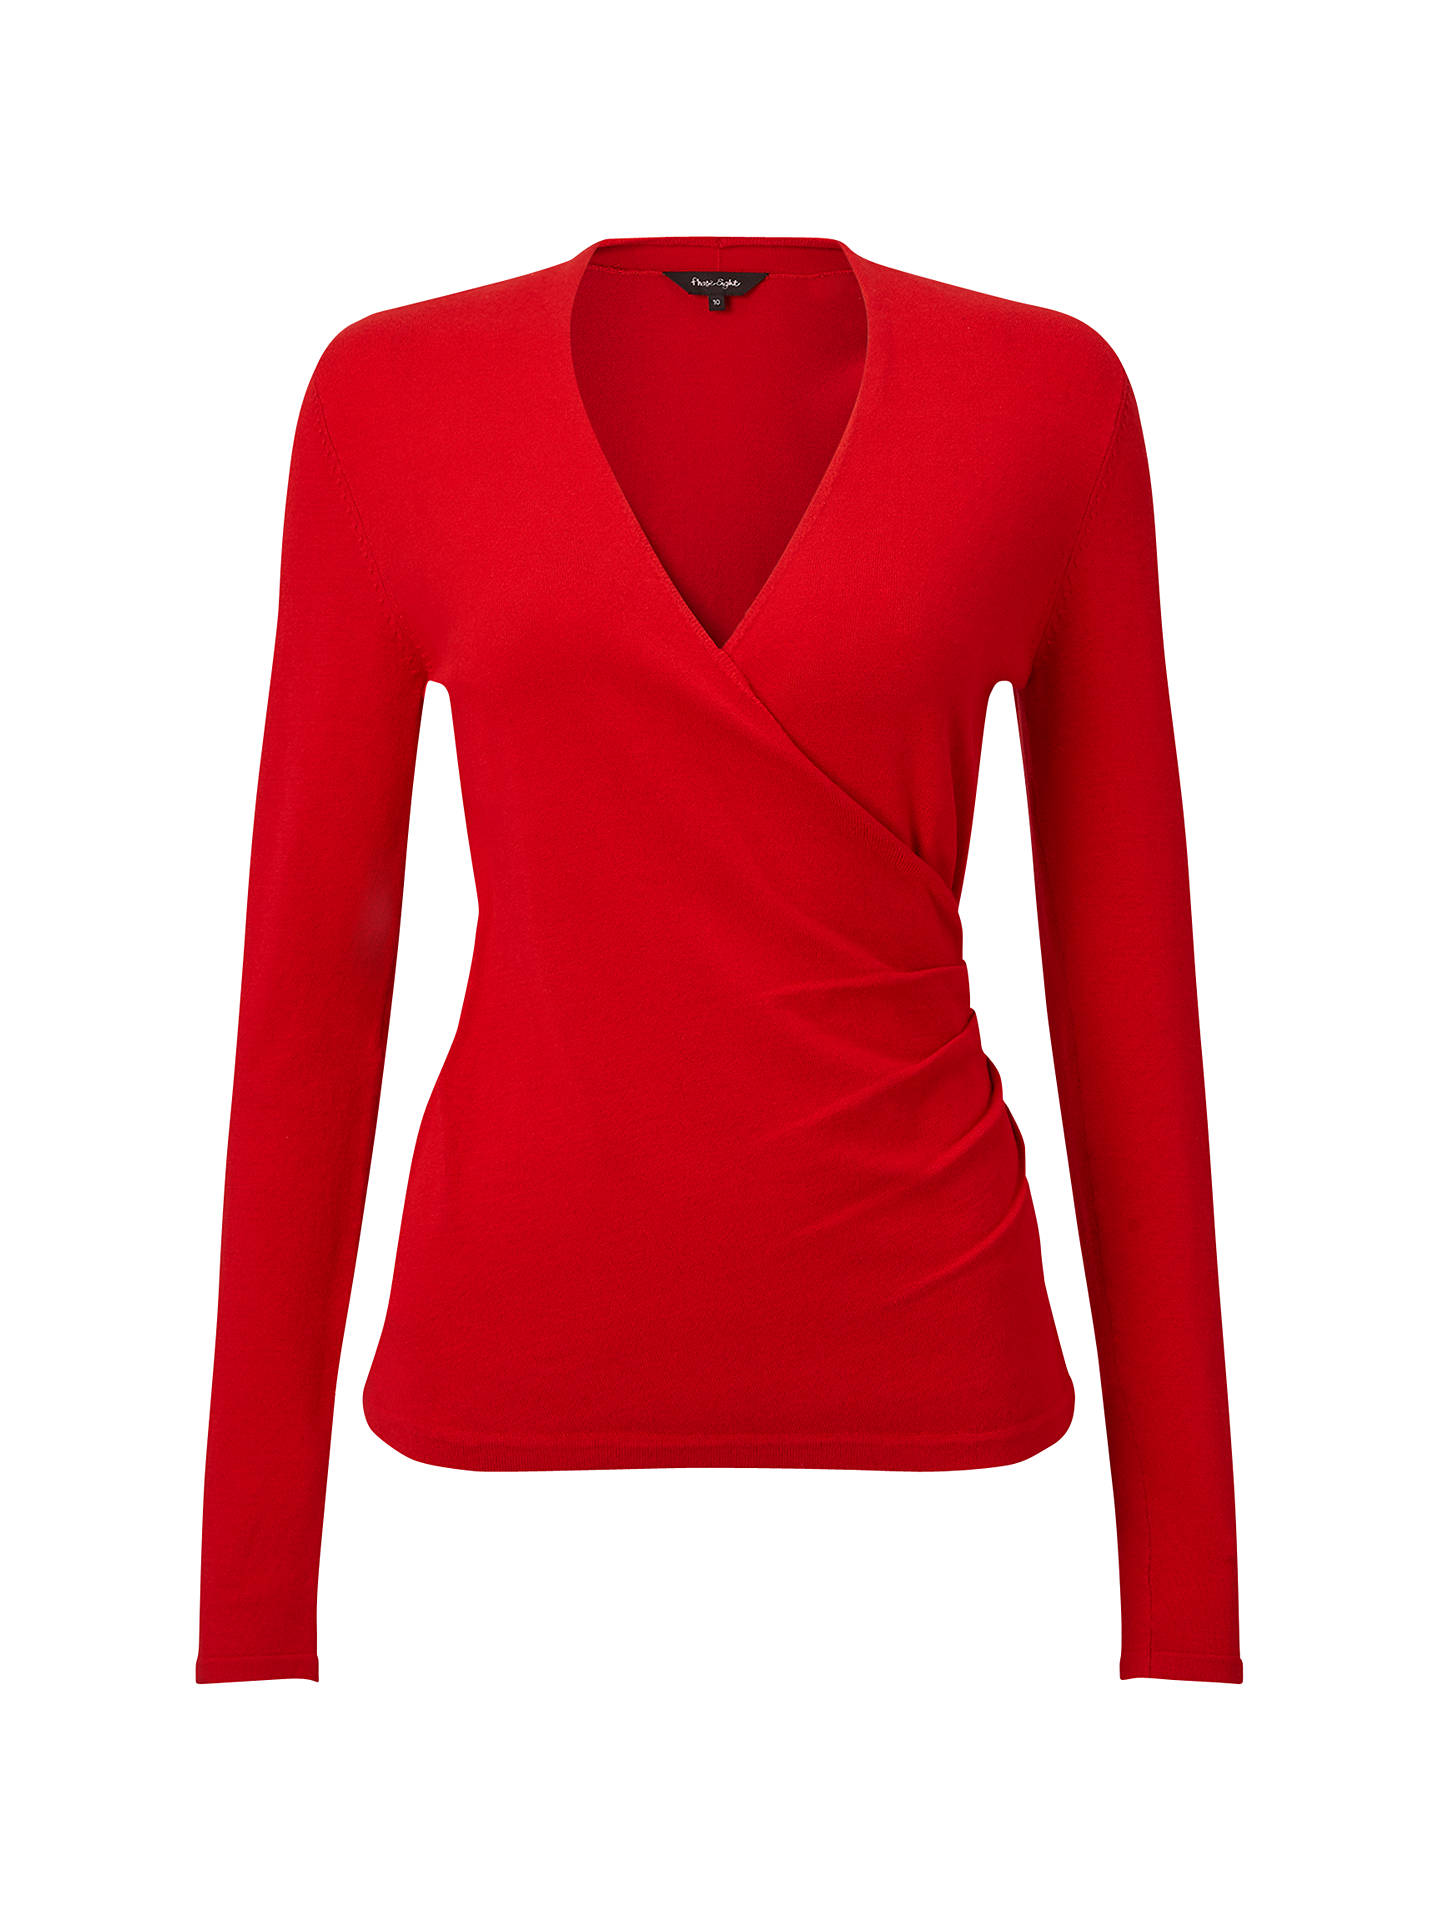 Phase Eight Wilma Wrap Knit Top Red At John Lewis Partners